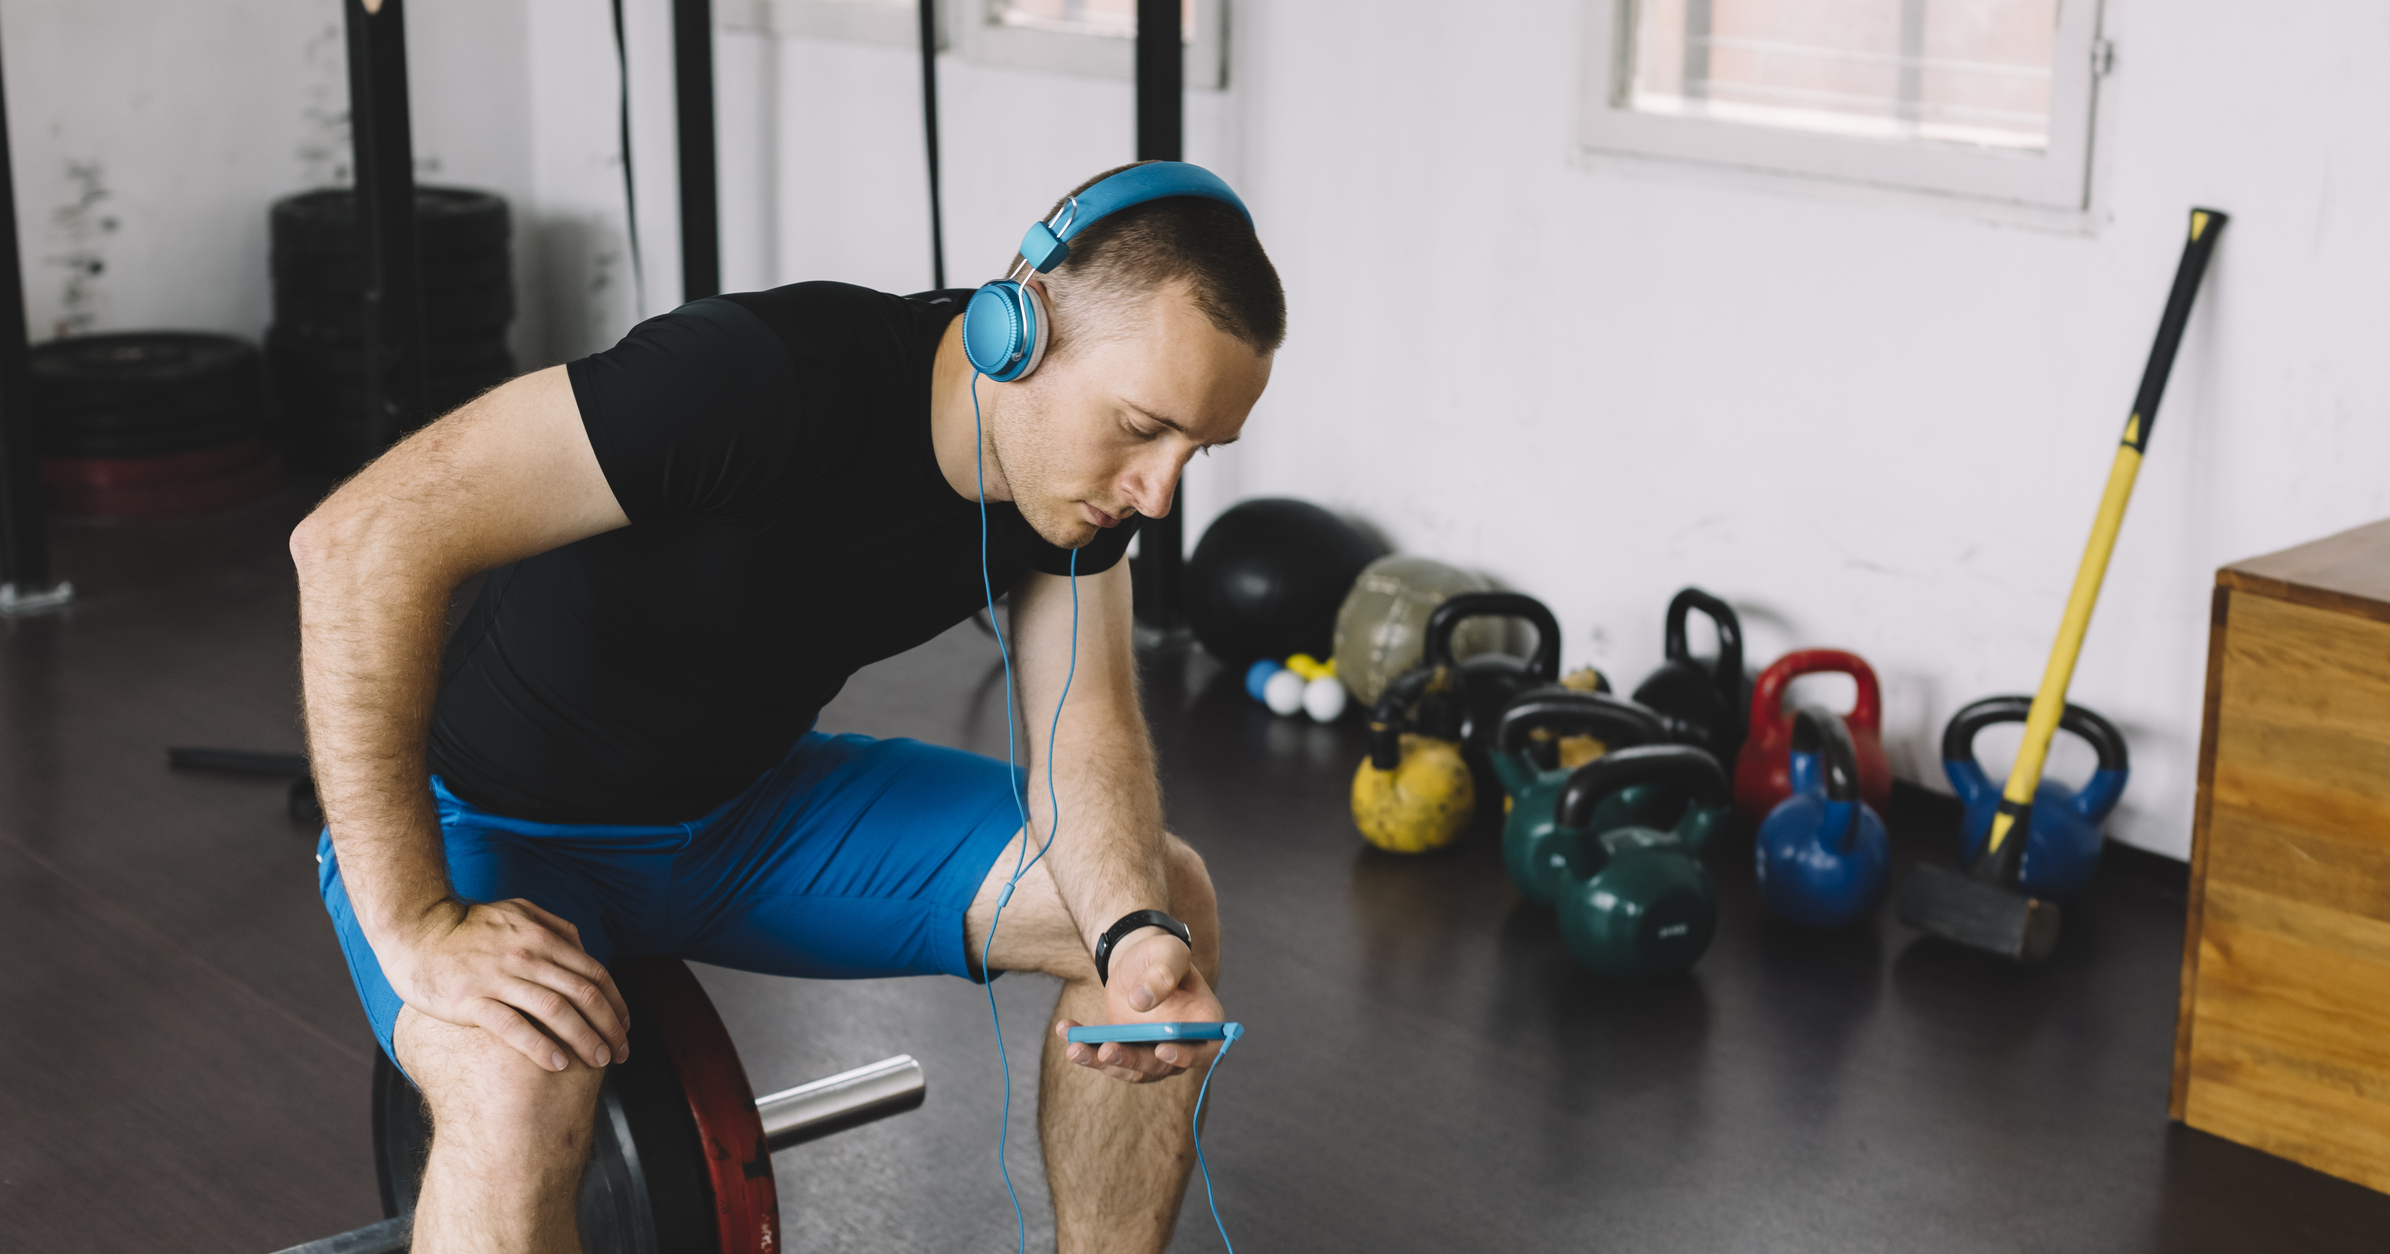 Online Training - Customizable and scalable workouts delivered right to your inbox.